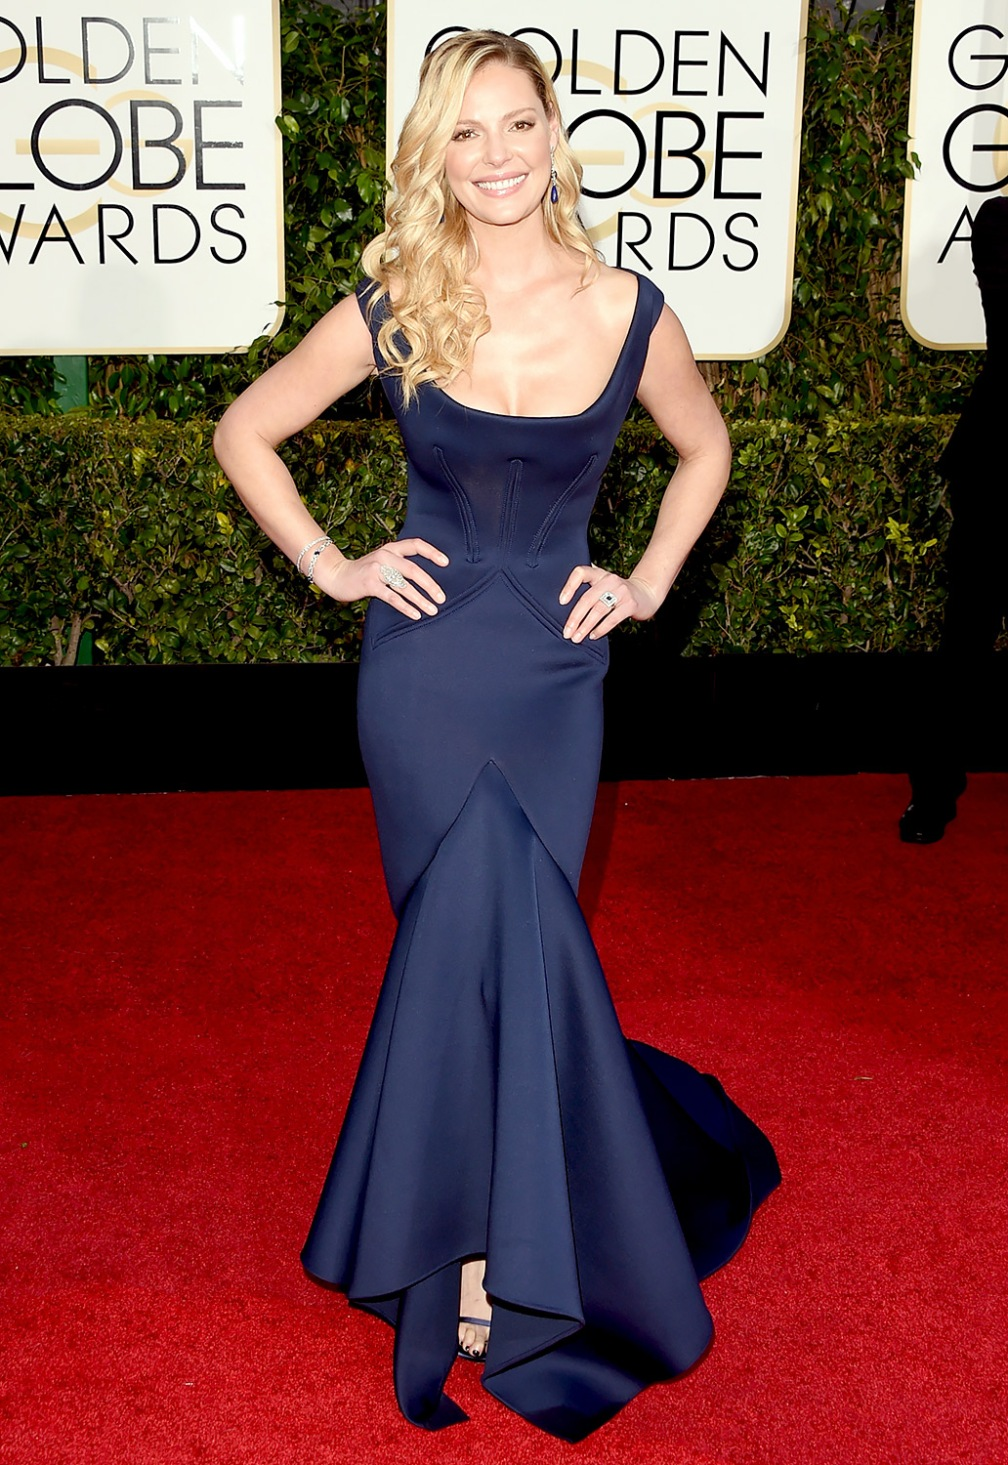 Katherine Heigl - My sister thought she wore the dress backwards. On second thought, I think she did!?!@@##$